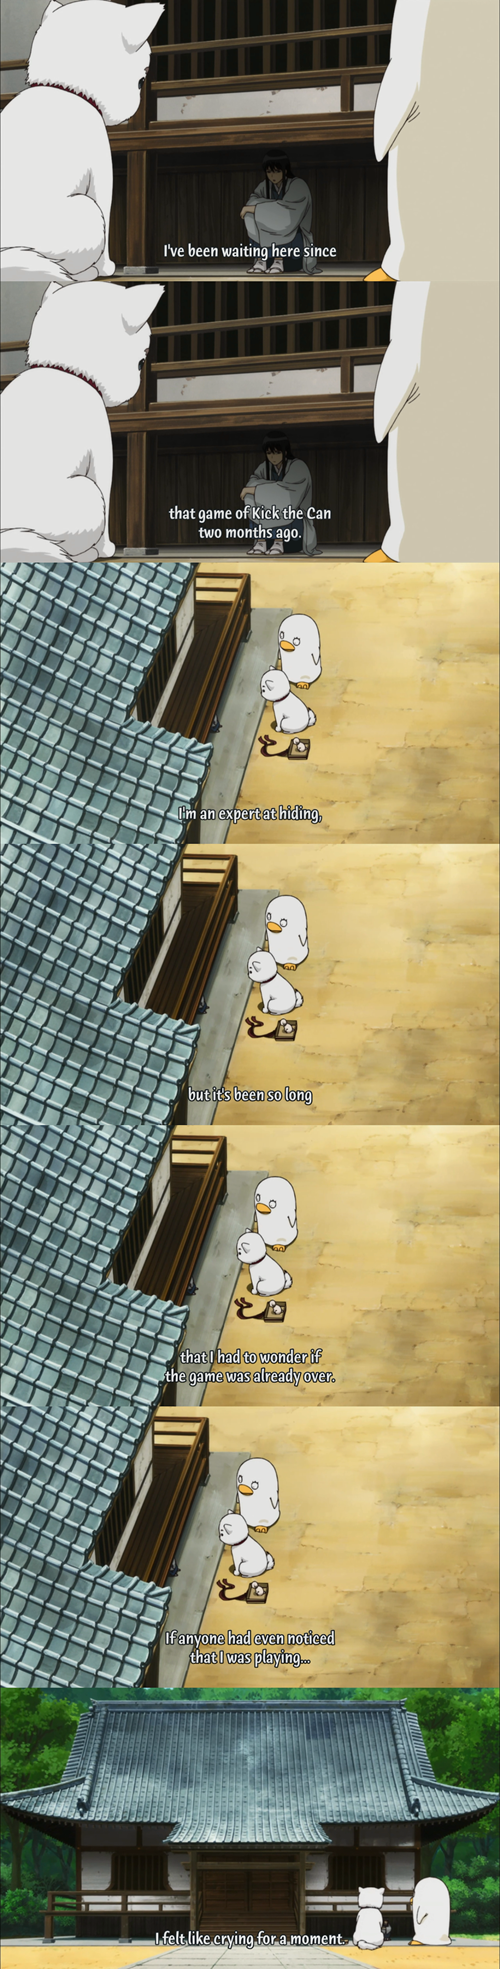 Sad anime gintama - 8456565760